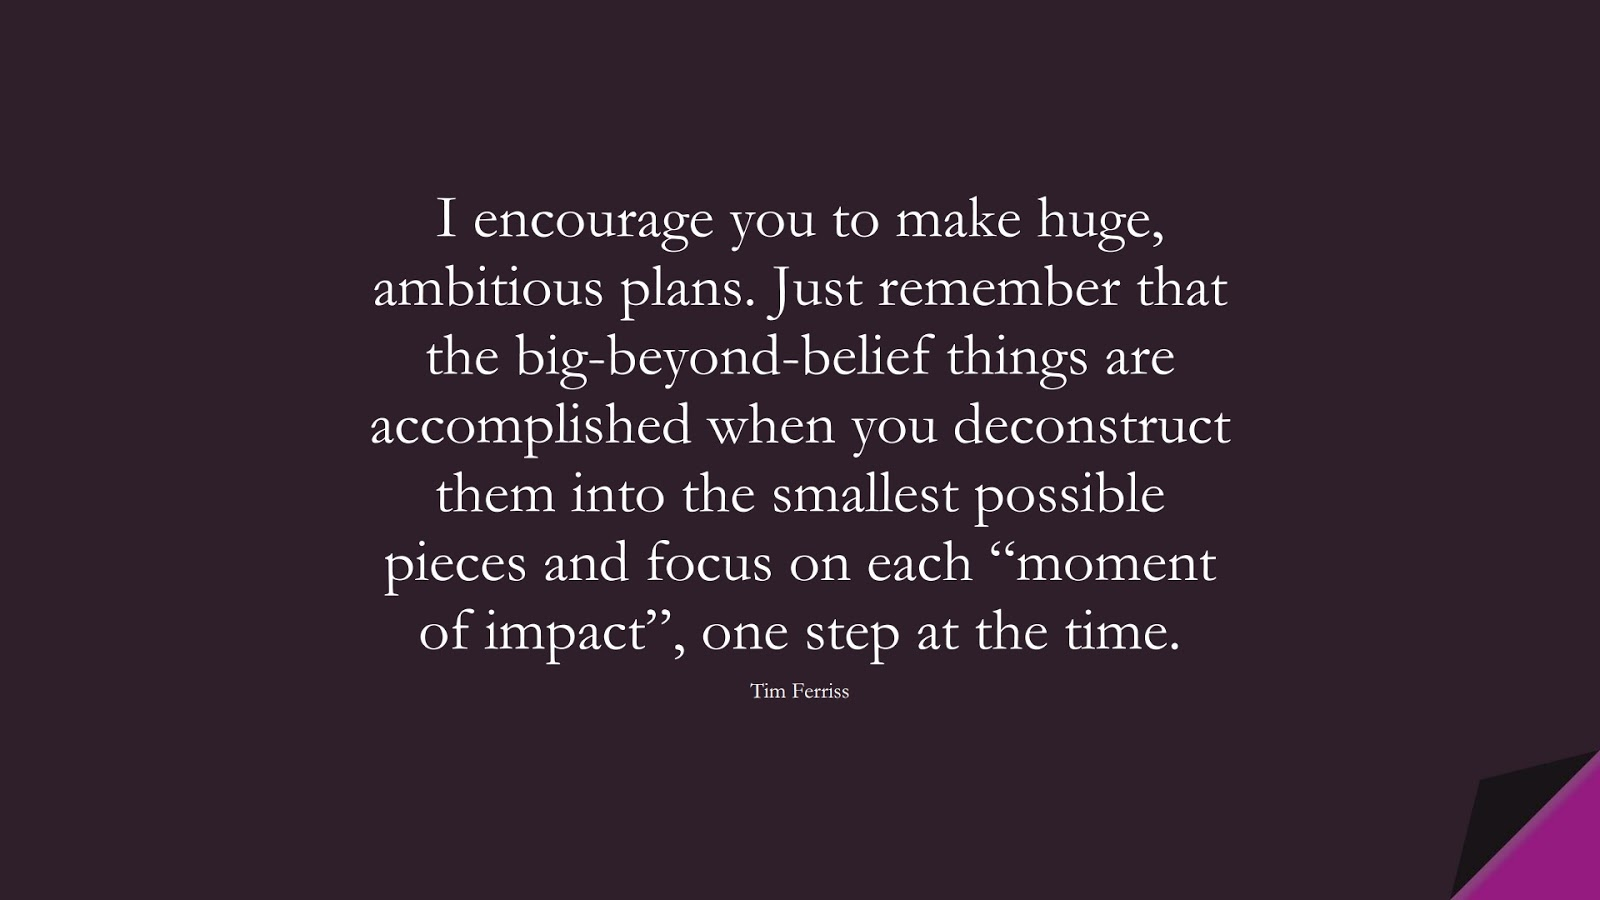 """I encourage you to make huge, ambitious plans. Just remember that the big-beyond-belief things are accomplished when you deconstruct them into the smallest possible pieces and focus on each """"moment of impact"""", one step at the time. (Tim Ferriss);  #TimFerrissQuotes"""